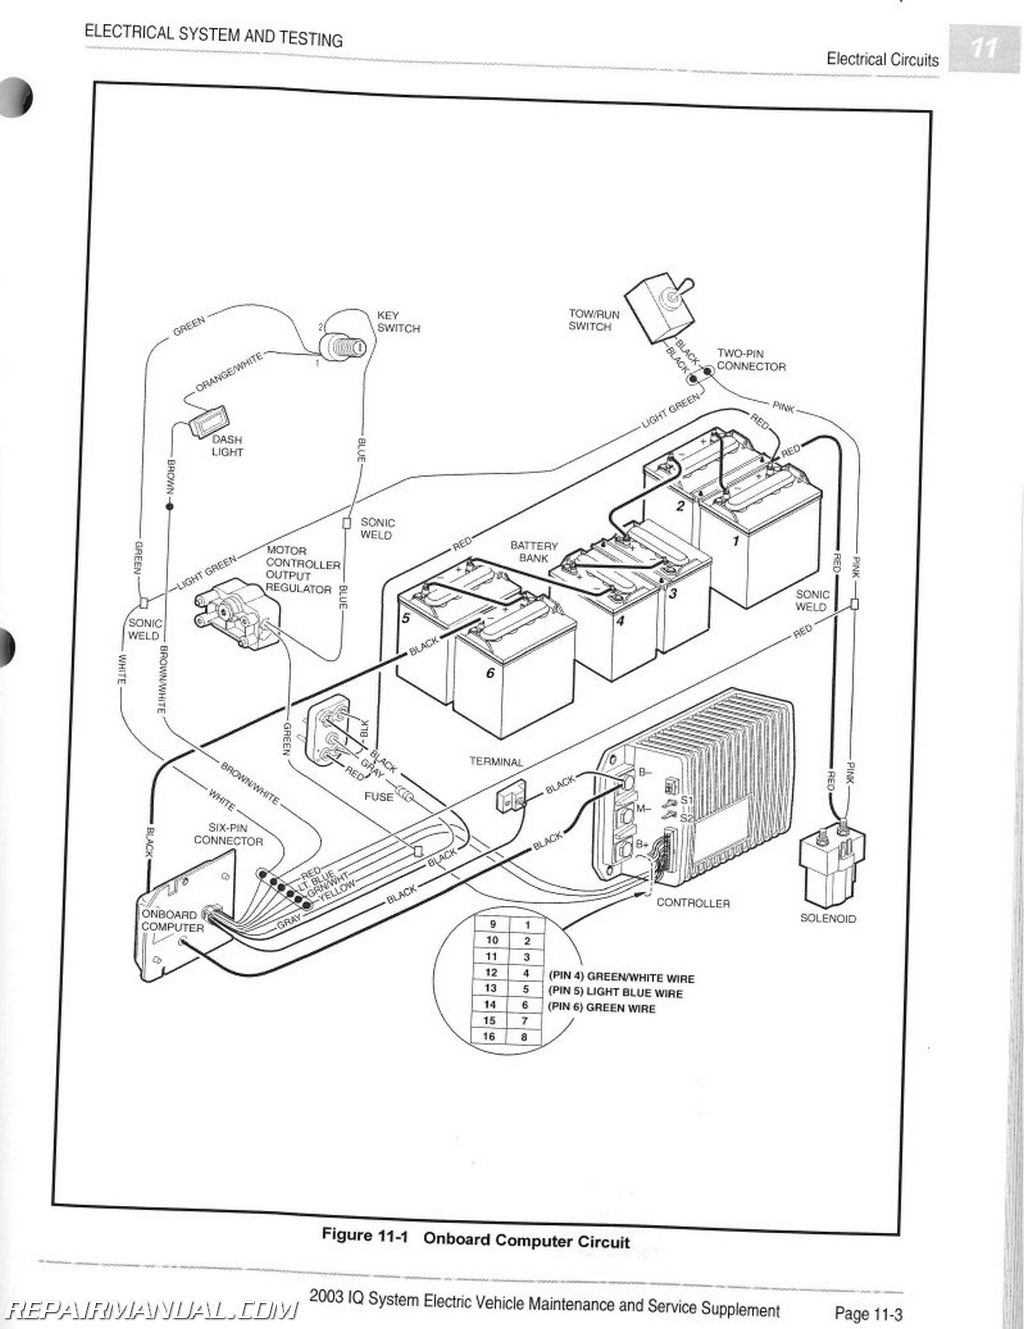 2003 Club Car IQ System Maintenance And Service Manual Supplement page 1?resize\\\=665%2C863 wire diagram club car motor 27 wiring diagram images wiring